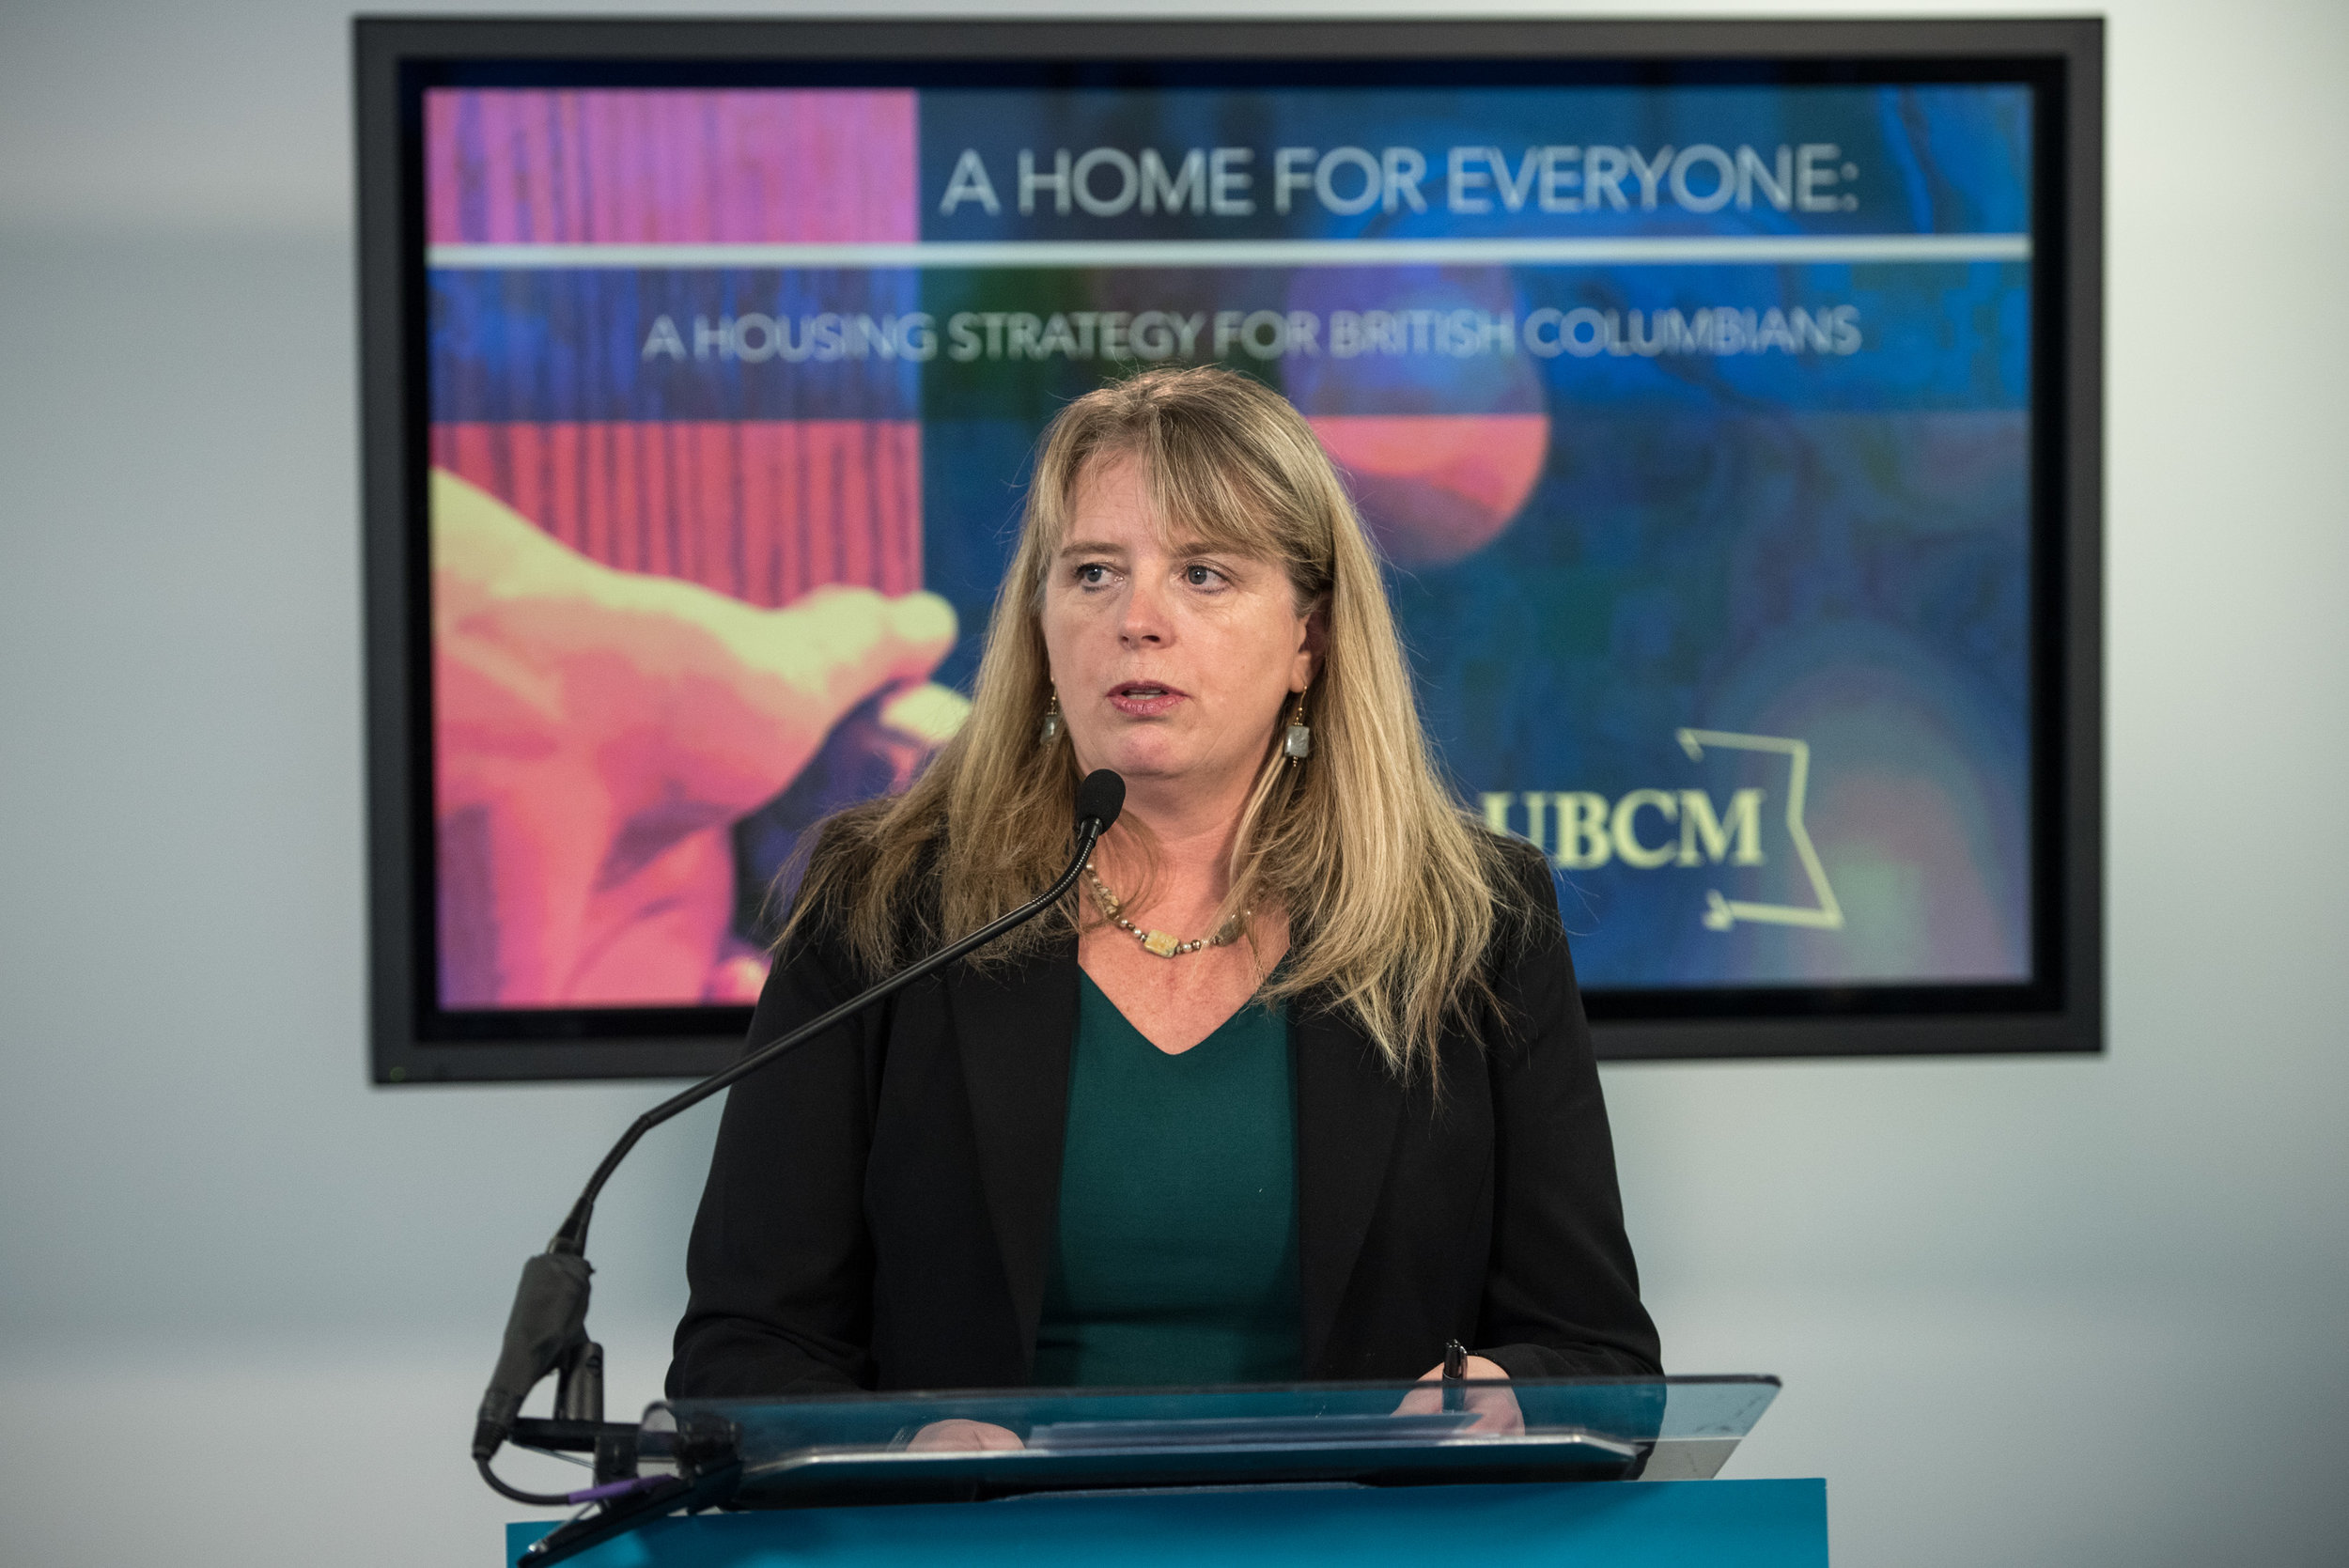 What is the UBCM? - The UBCM was formed to provide a common voice for local government. I am proud to have been elected president in 2017, and have been an active member since 2012. The UBCM reflects the truth in the old adages